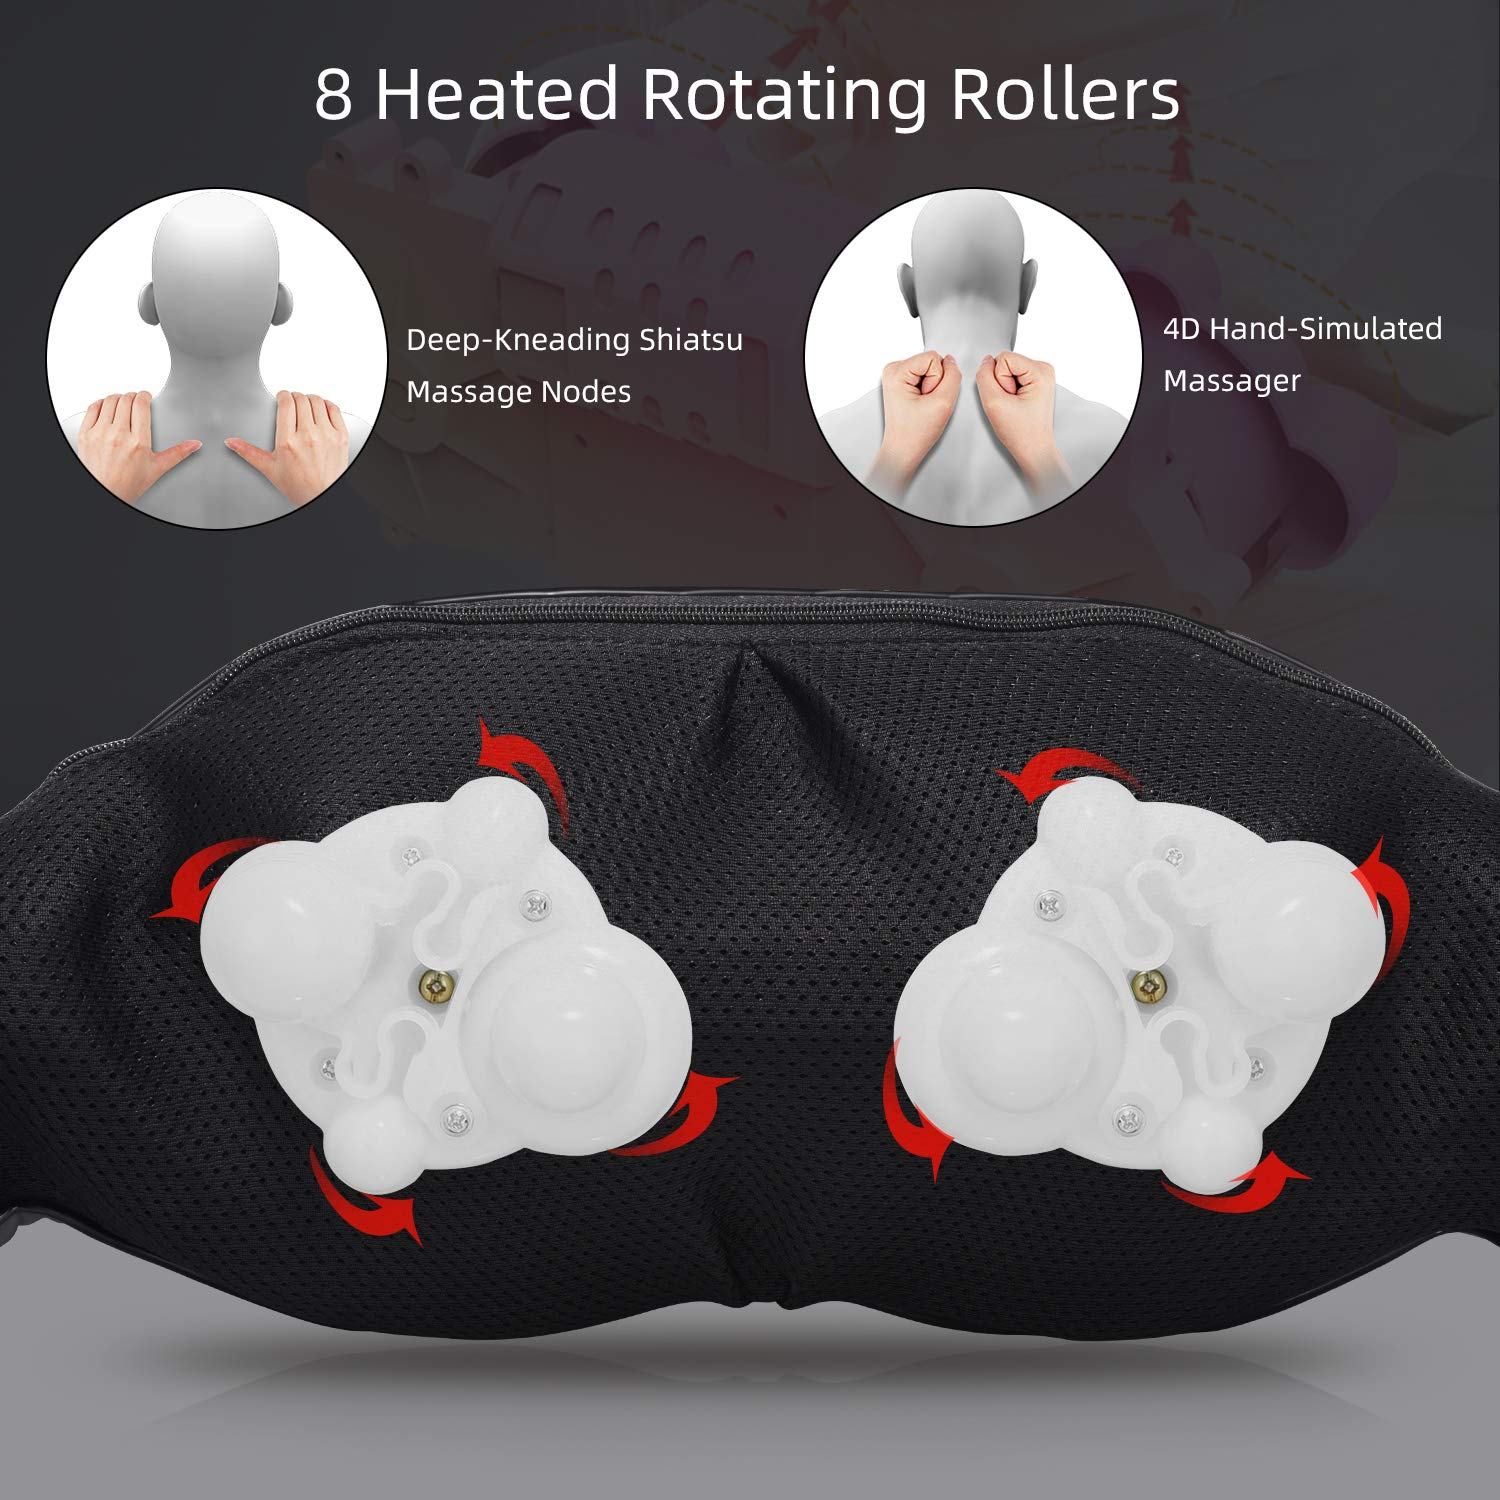 Shiatsu Neck Shoulder Massager Electric Back Massage with Heat Remote Control Deep Tissue 4D Kneading Massagers for Neck, Shoulders, Back, Feet, Legs, Body Muscle Pain Relief at Home, Office Car